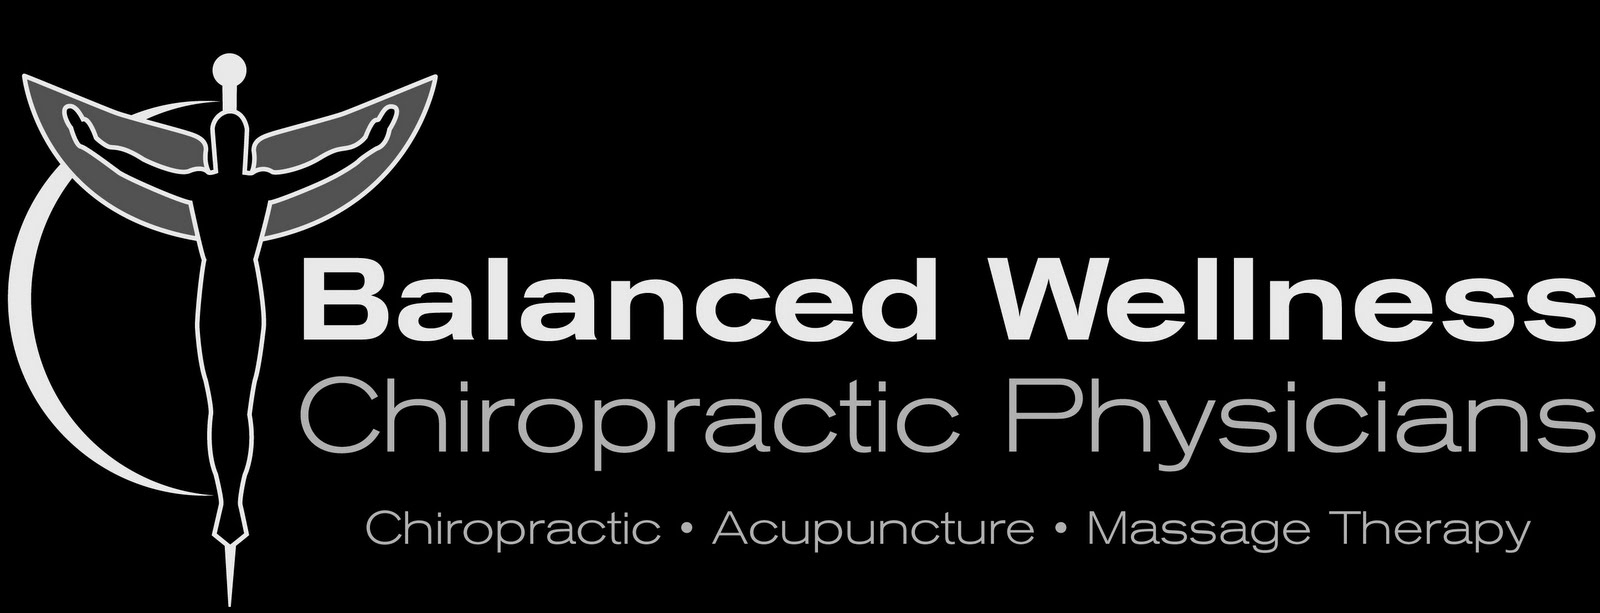 Balanced Wellness Chiropractic Oklahoma City, OK